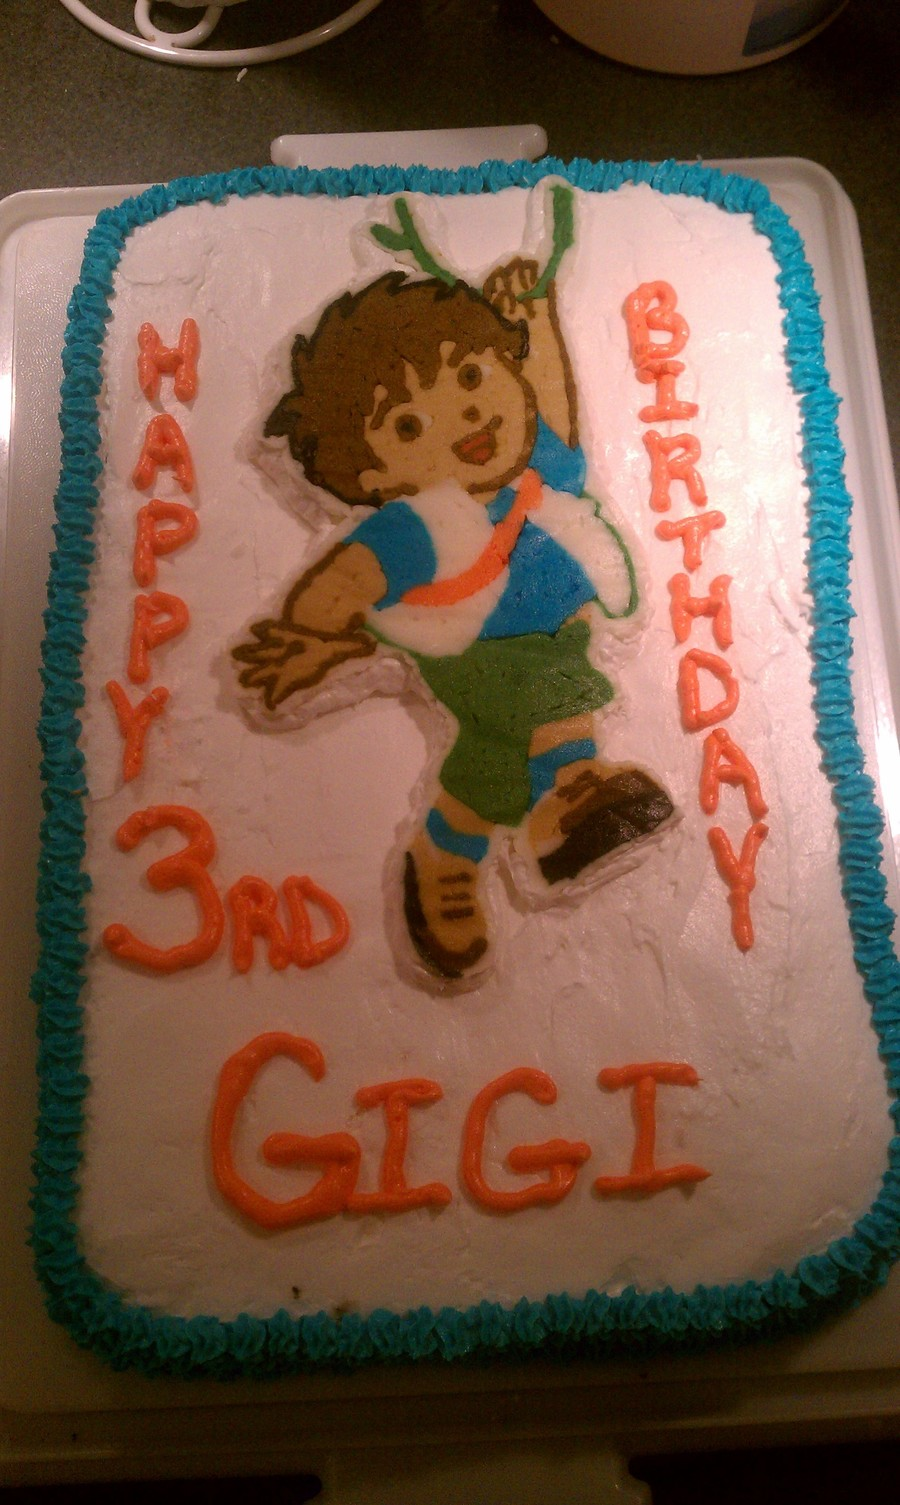 Go, Diego Go Fbct 3Rd Bday Cake  on Cake Central